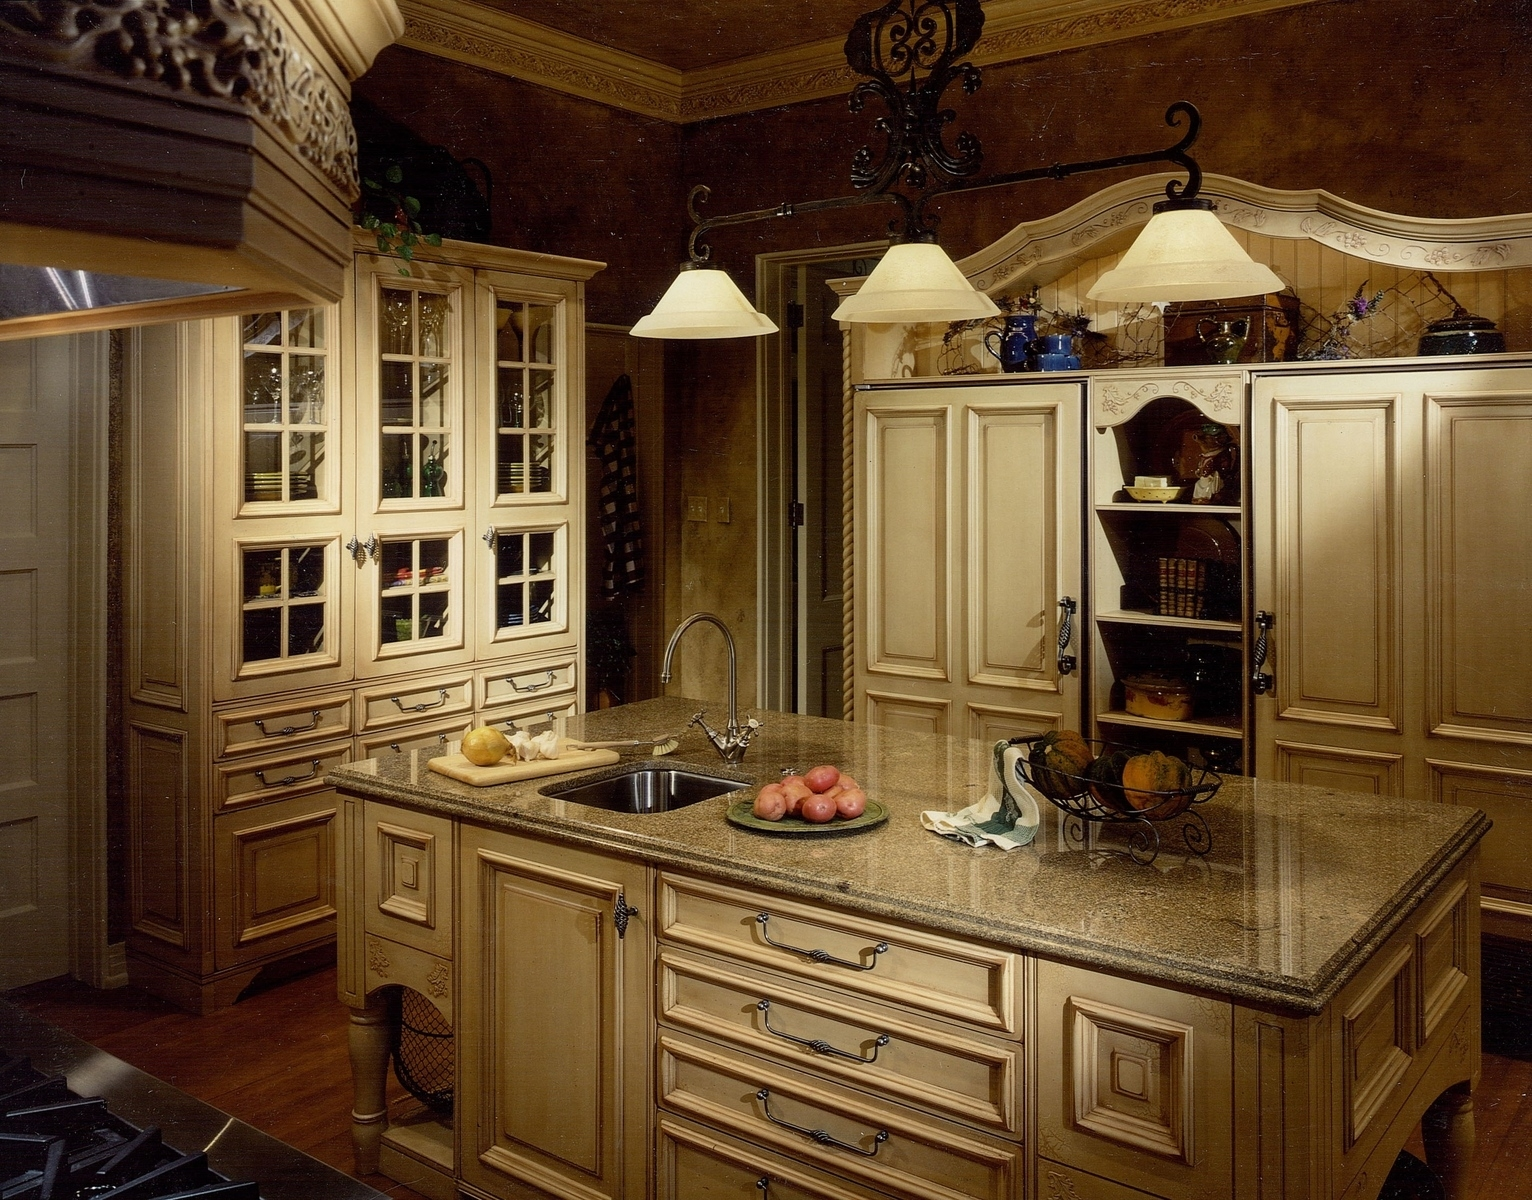 designing the kitchen with french country kitchen design - video and regarding Colorful and Inviting French Country Decor